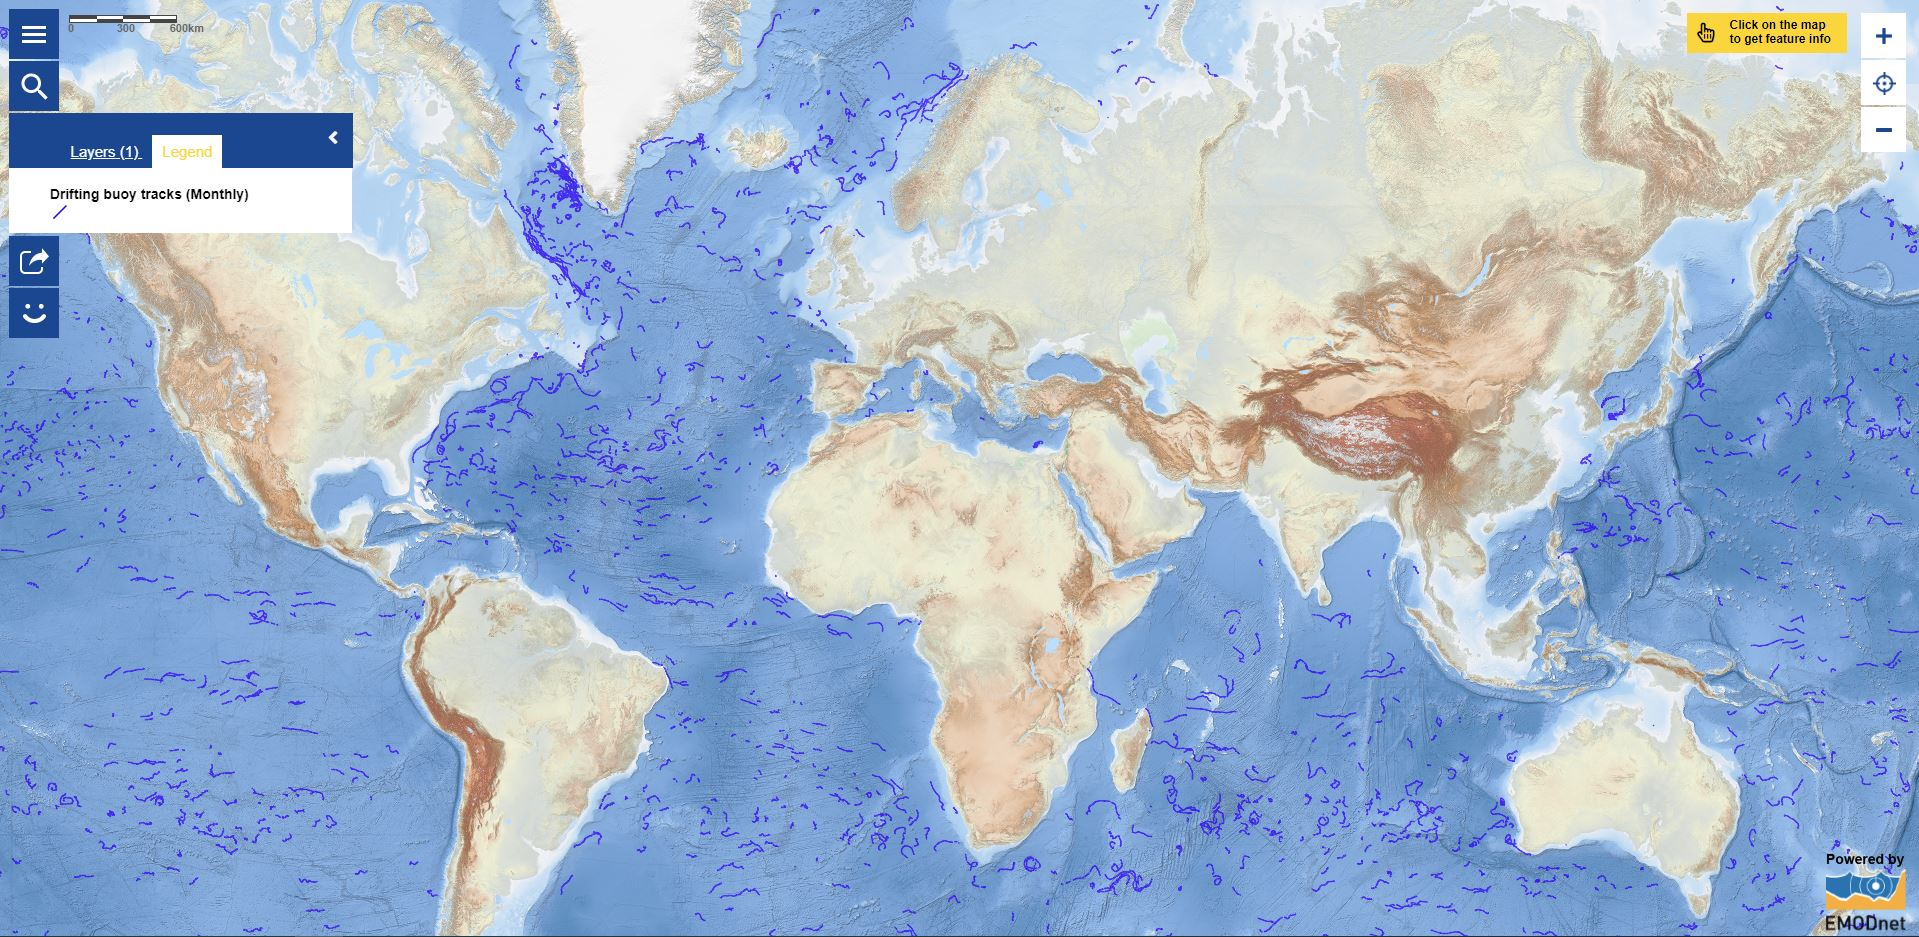 Map of the Week – Monthly drifting buoy trajectories